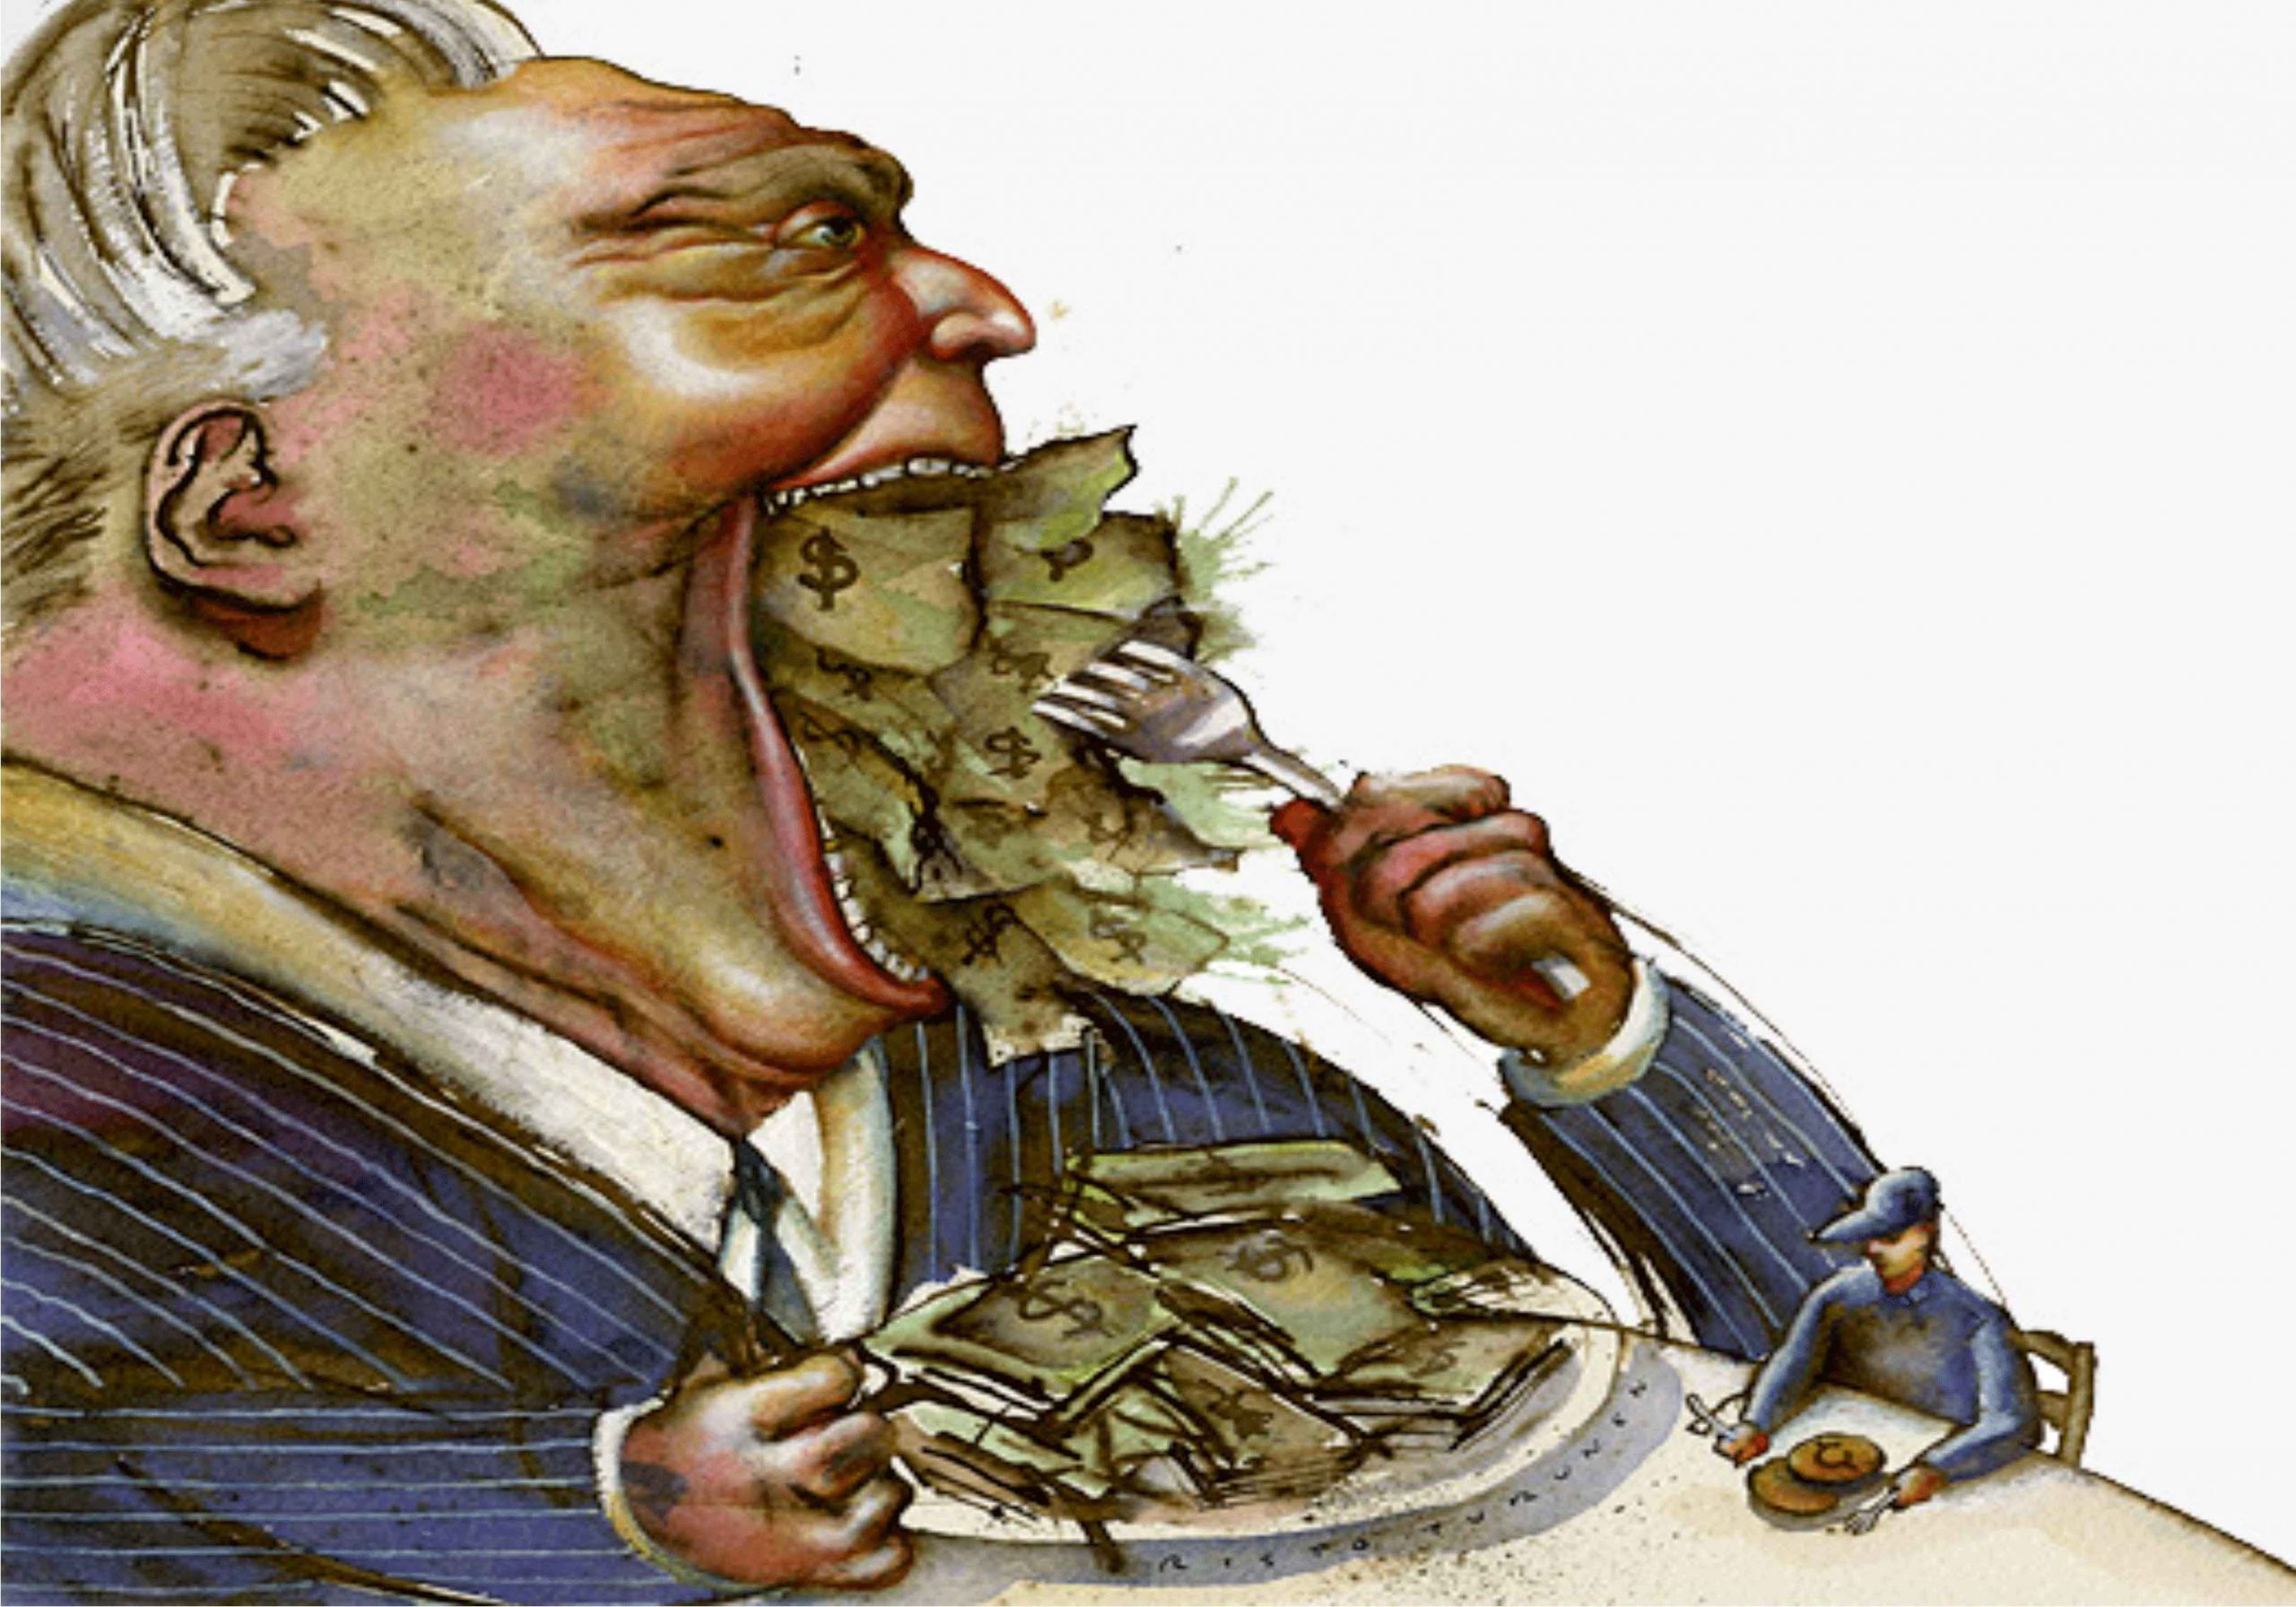 Does Money Make Us Greedy and Self-Inflating?